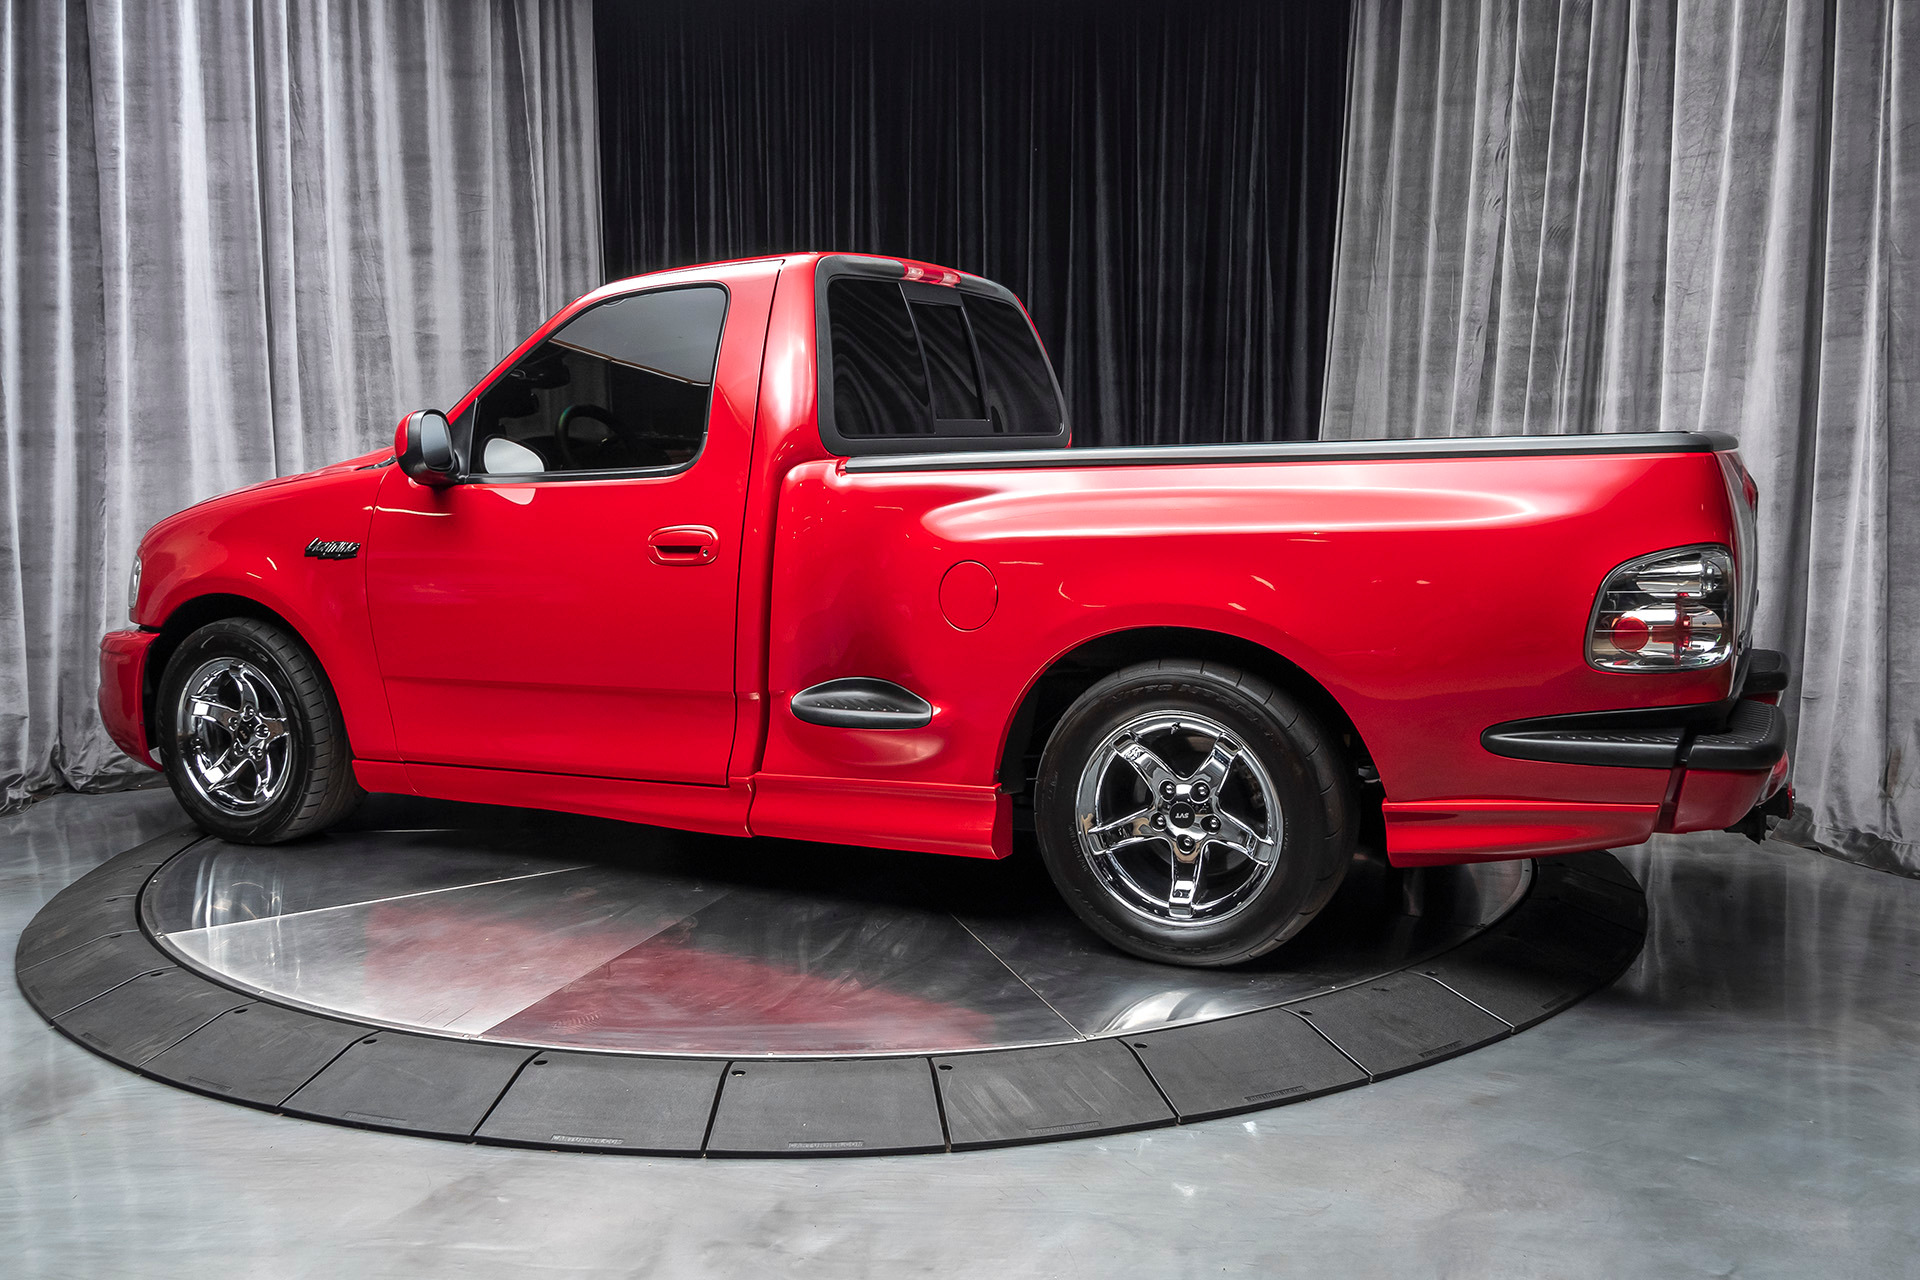 Used-2000-Ford-F-150-SVT-Lightning-Supercharged--ONLY-31K-MILES--THOUSANDS-IN-UPGRADES